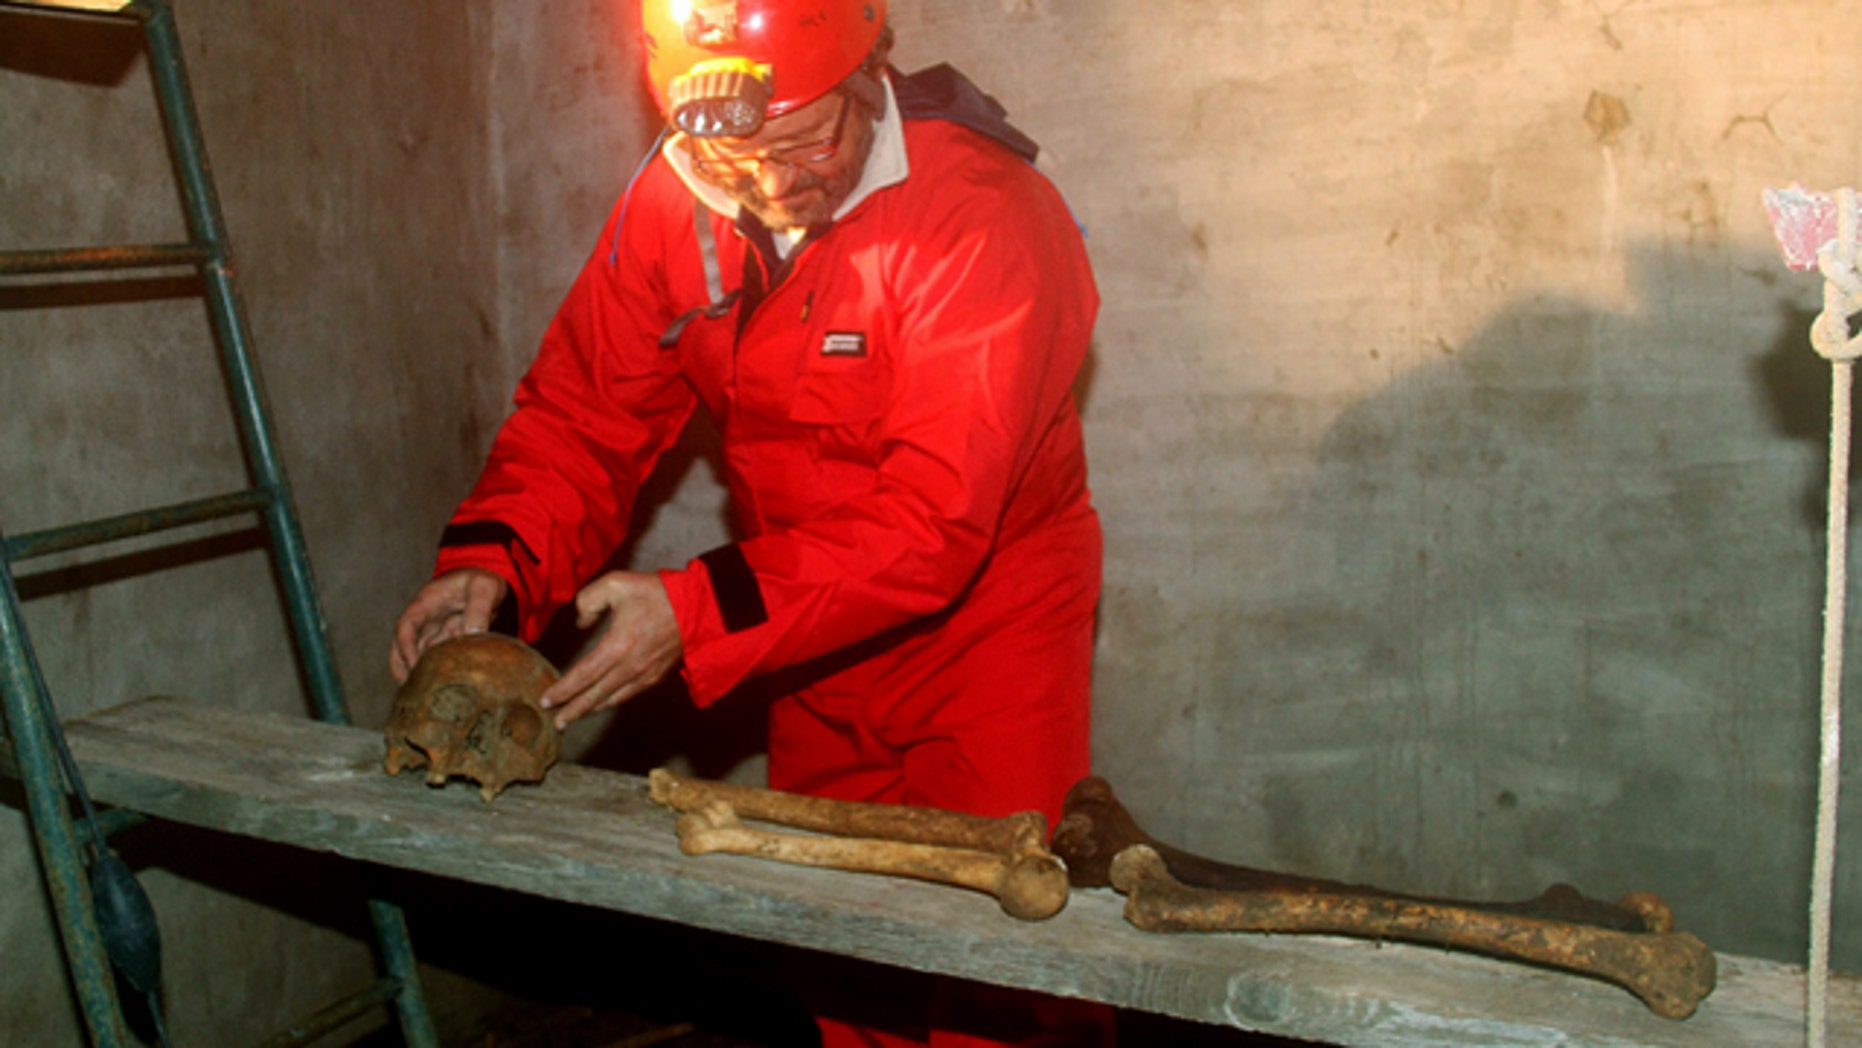 Italian researcher Antonio Moretti collects bones on a wooden board inside the crypt of San Sebastiano cemetery, in Porto Ercole, Italy. Moretti and a team of fellow scientists and academics want to solve the mystery surrounding the death of one of Italy's greatest artists: Caravaggio.